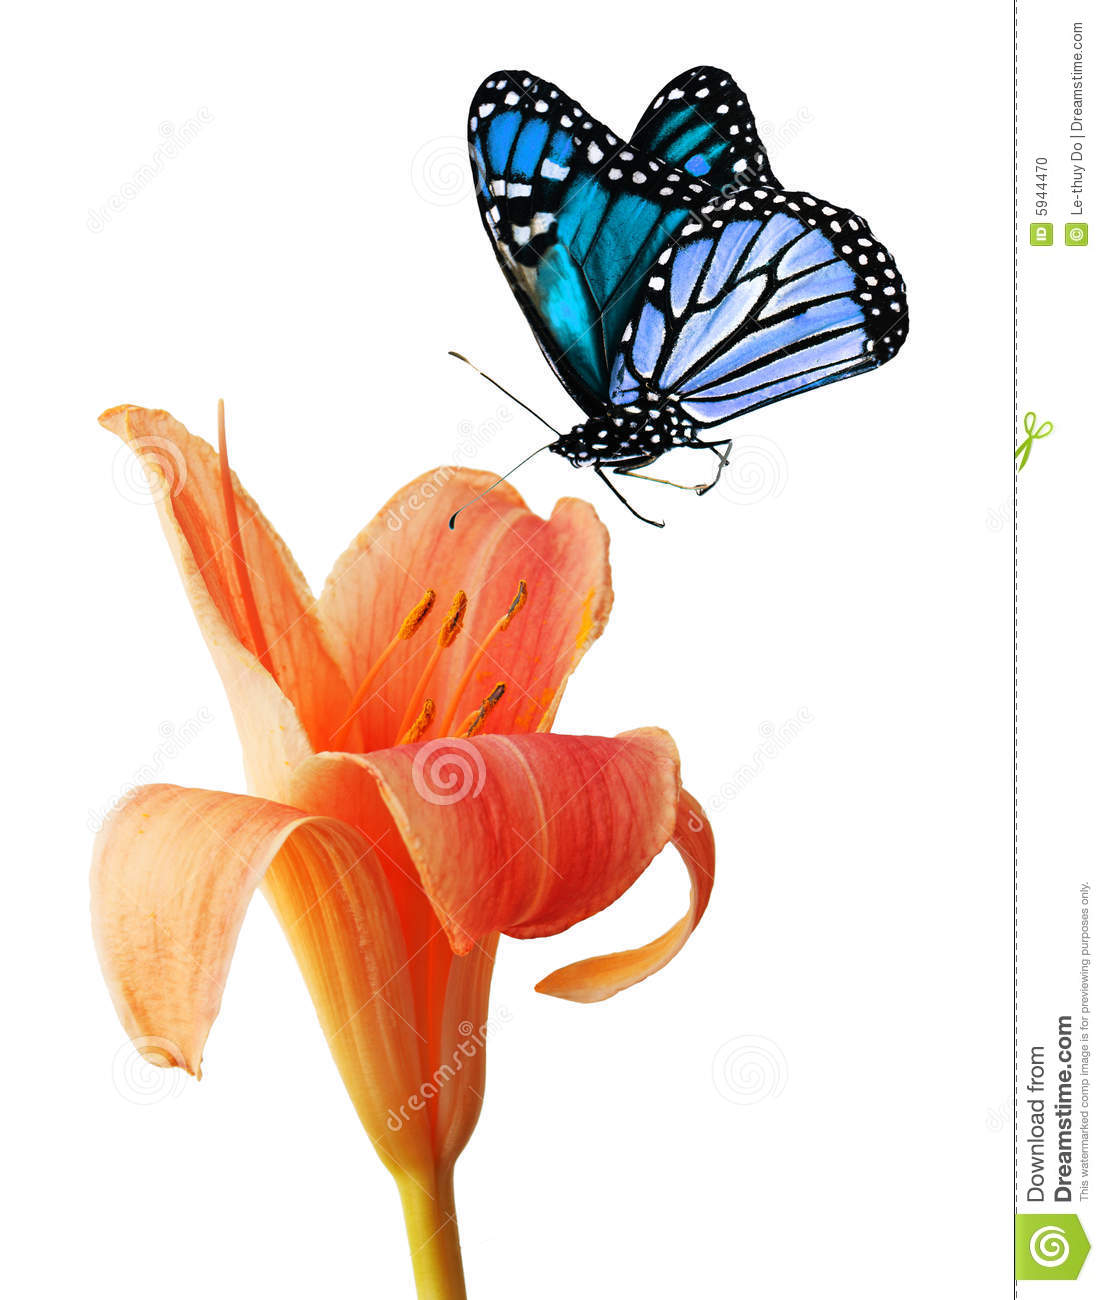 blue butterflies liliesjpg - photo #19